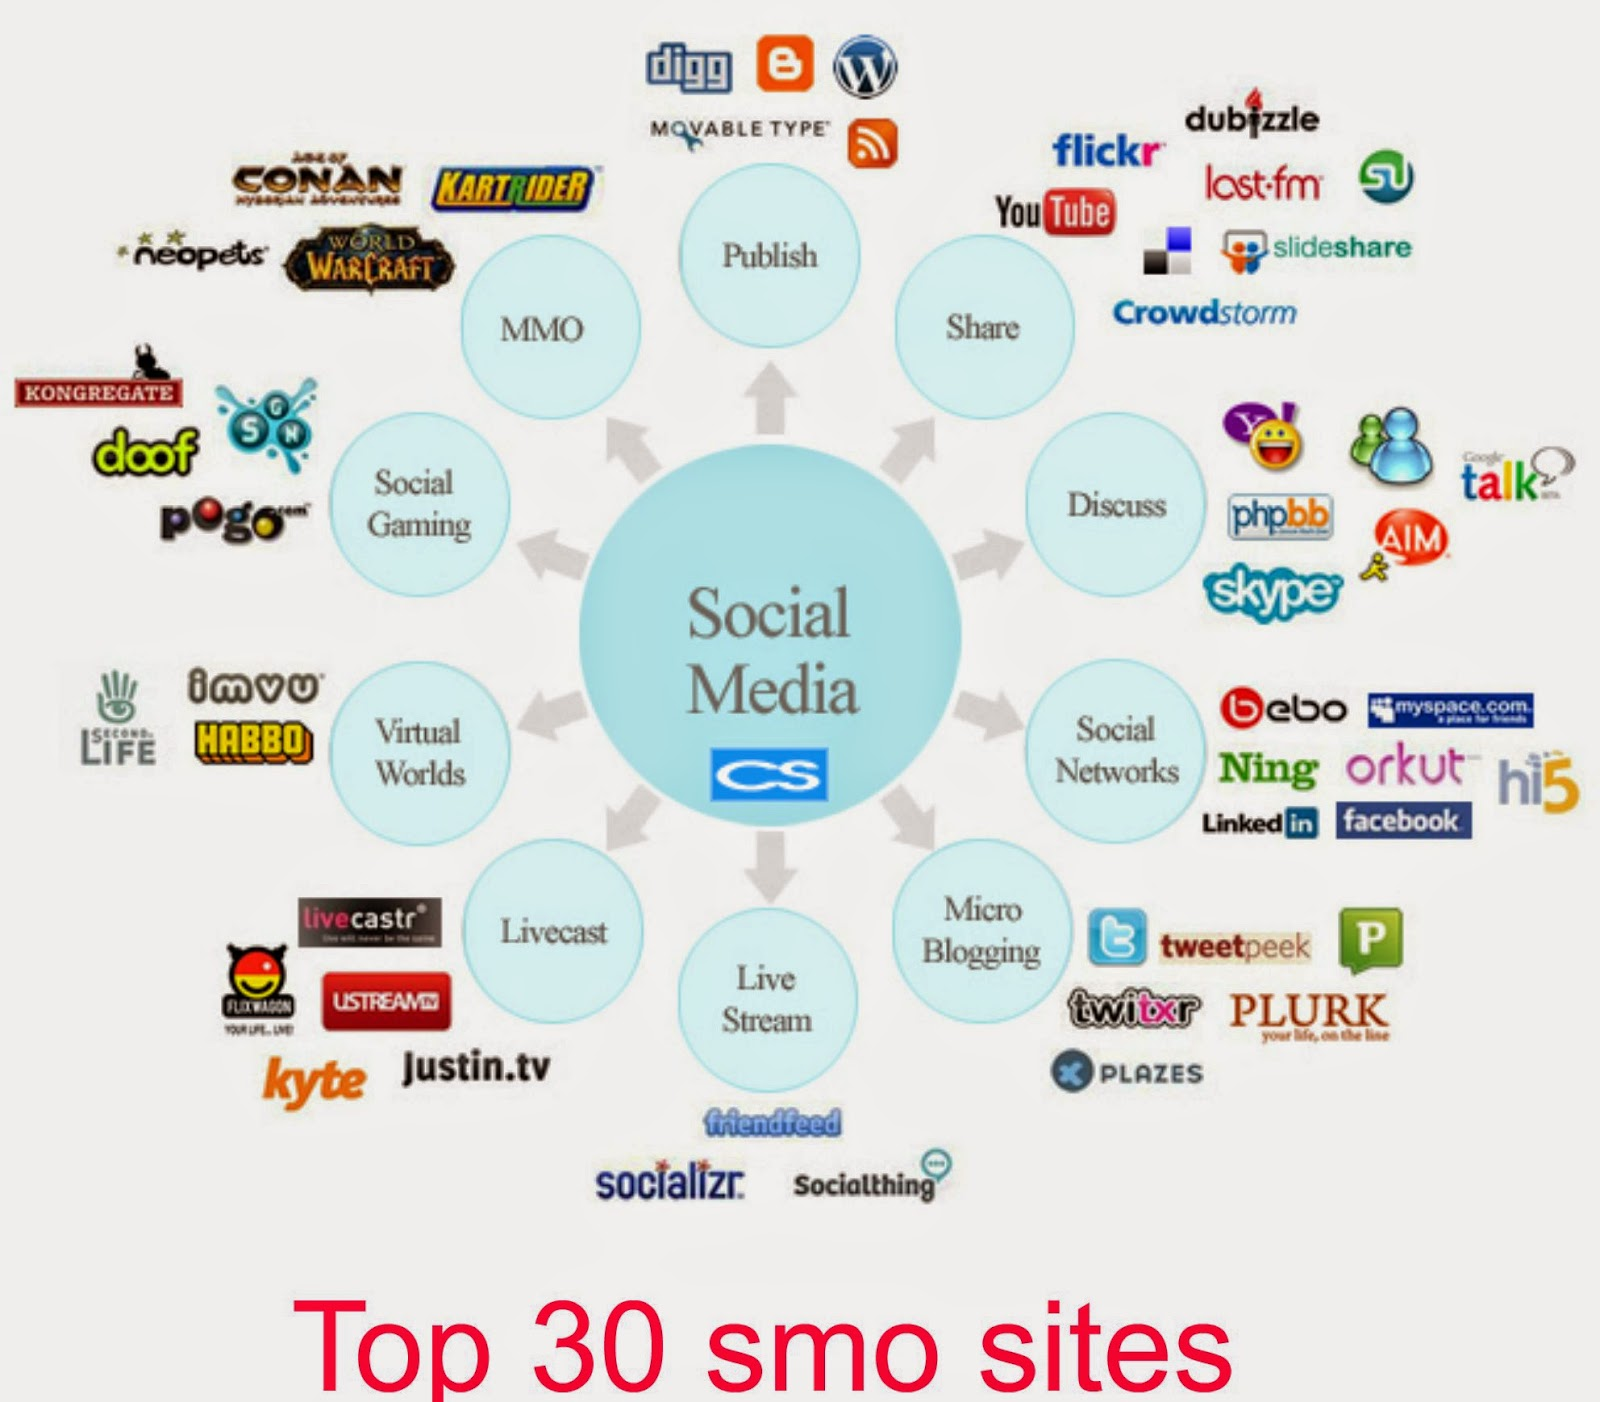 top 30 smo sites list 2015